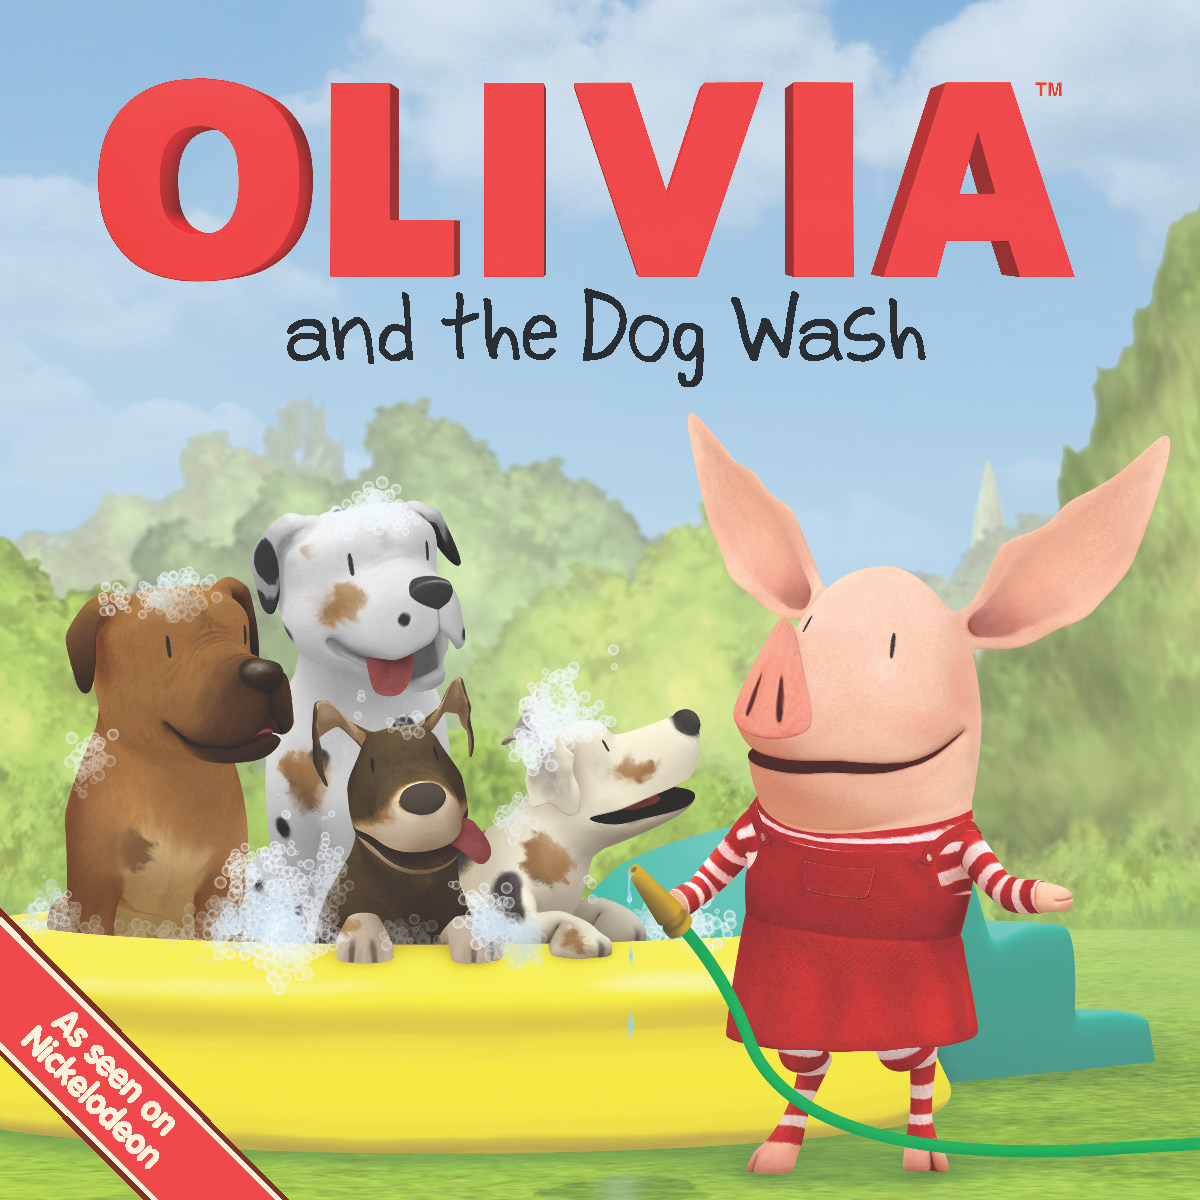 OLIVIA and the Dog Wash By: Natalie Shaw,Shane L. Johnson